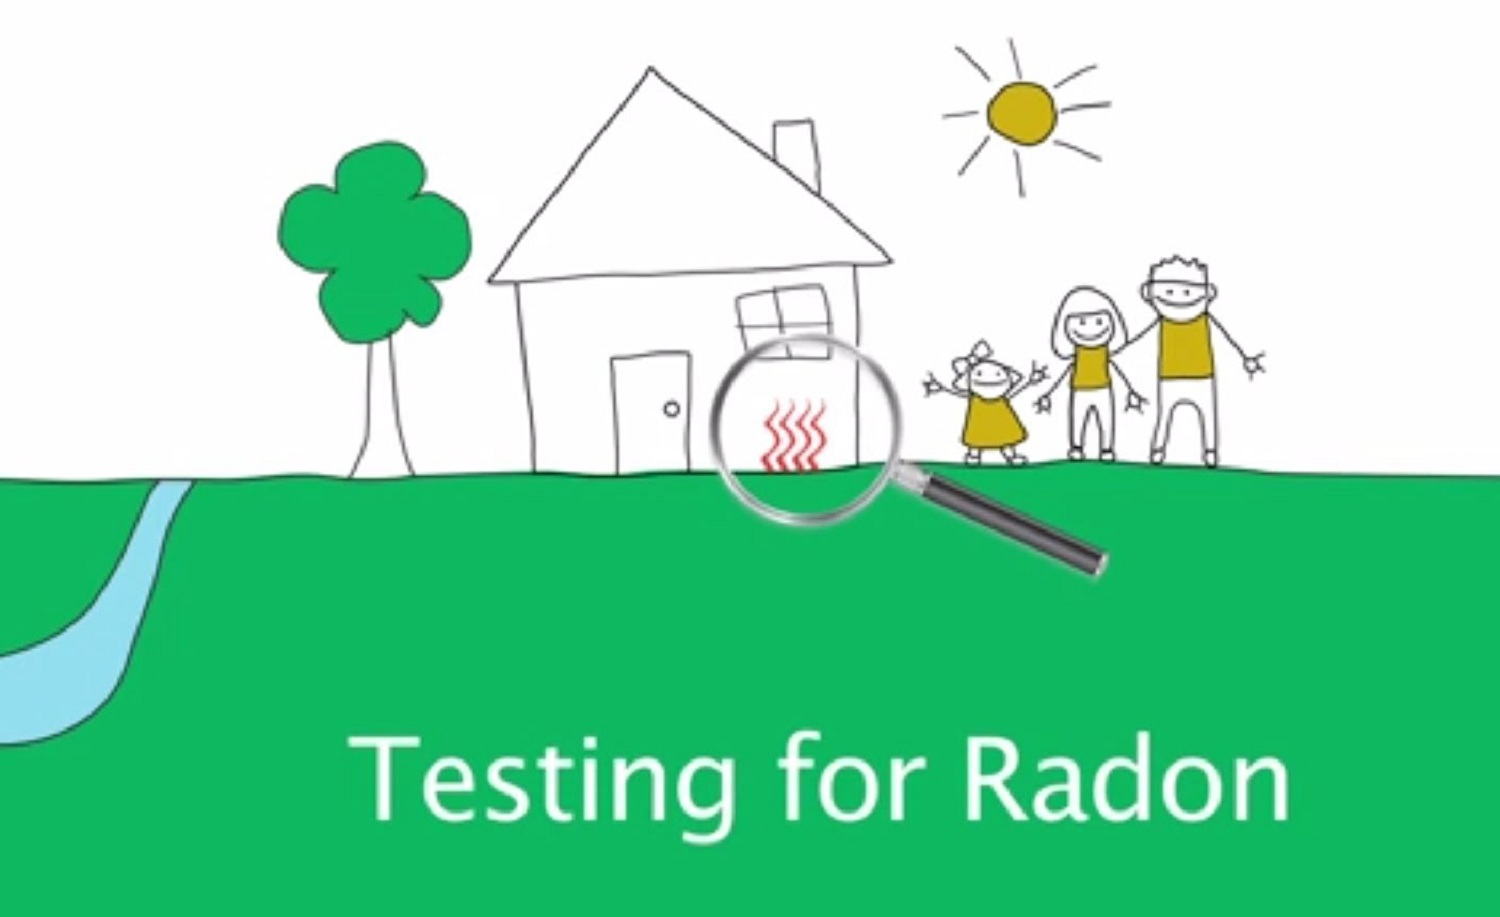 Lessen Radon Health Risk with Radon Testing